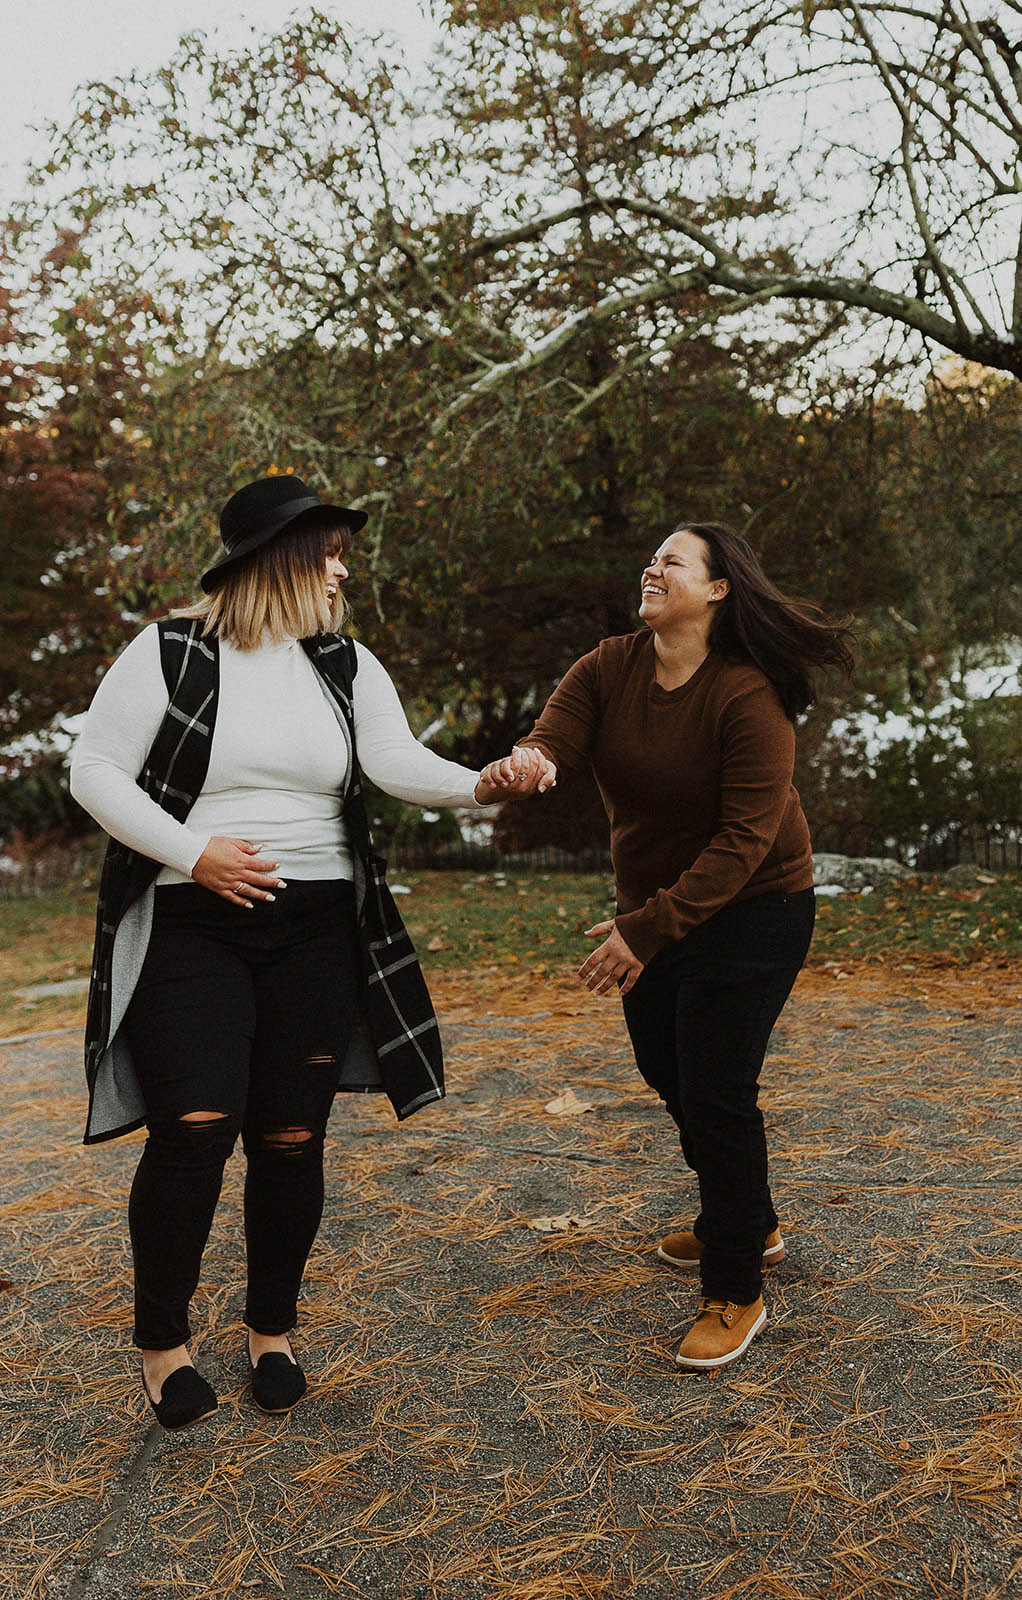 Rhode Island Lesbian Engagement Photography - Dancing With Her